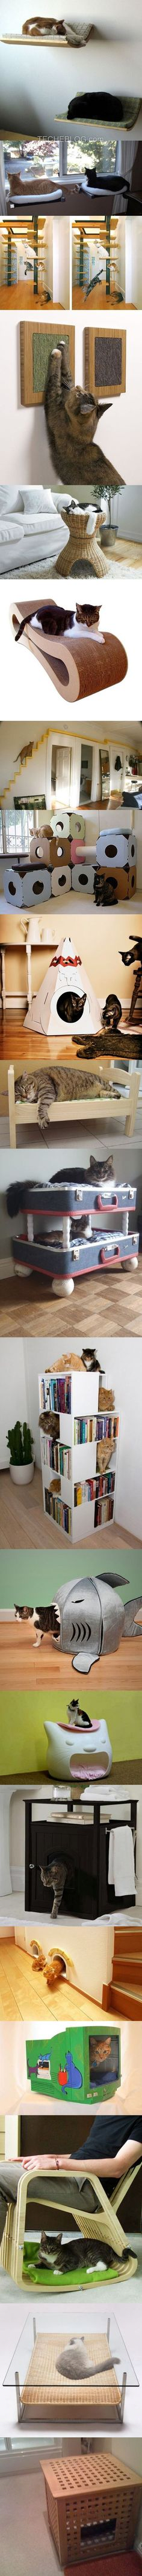 For Cali...Here are twenty fun and geeky furniture designs for cats.